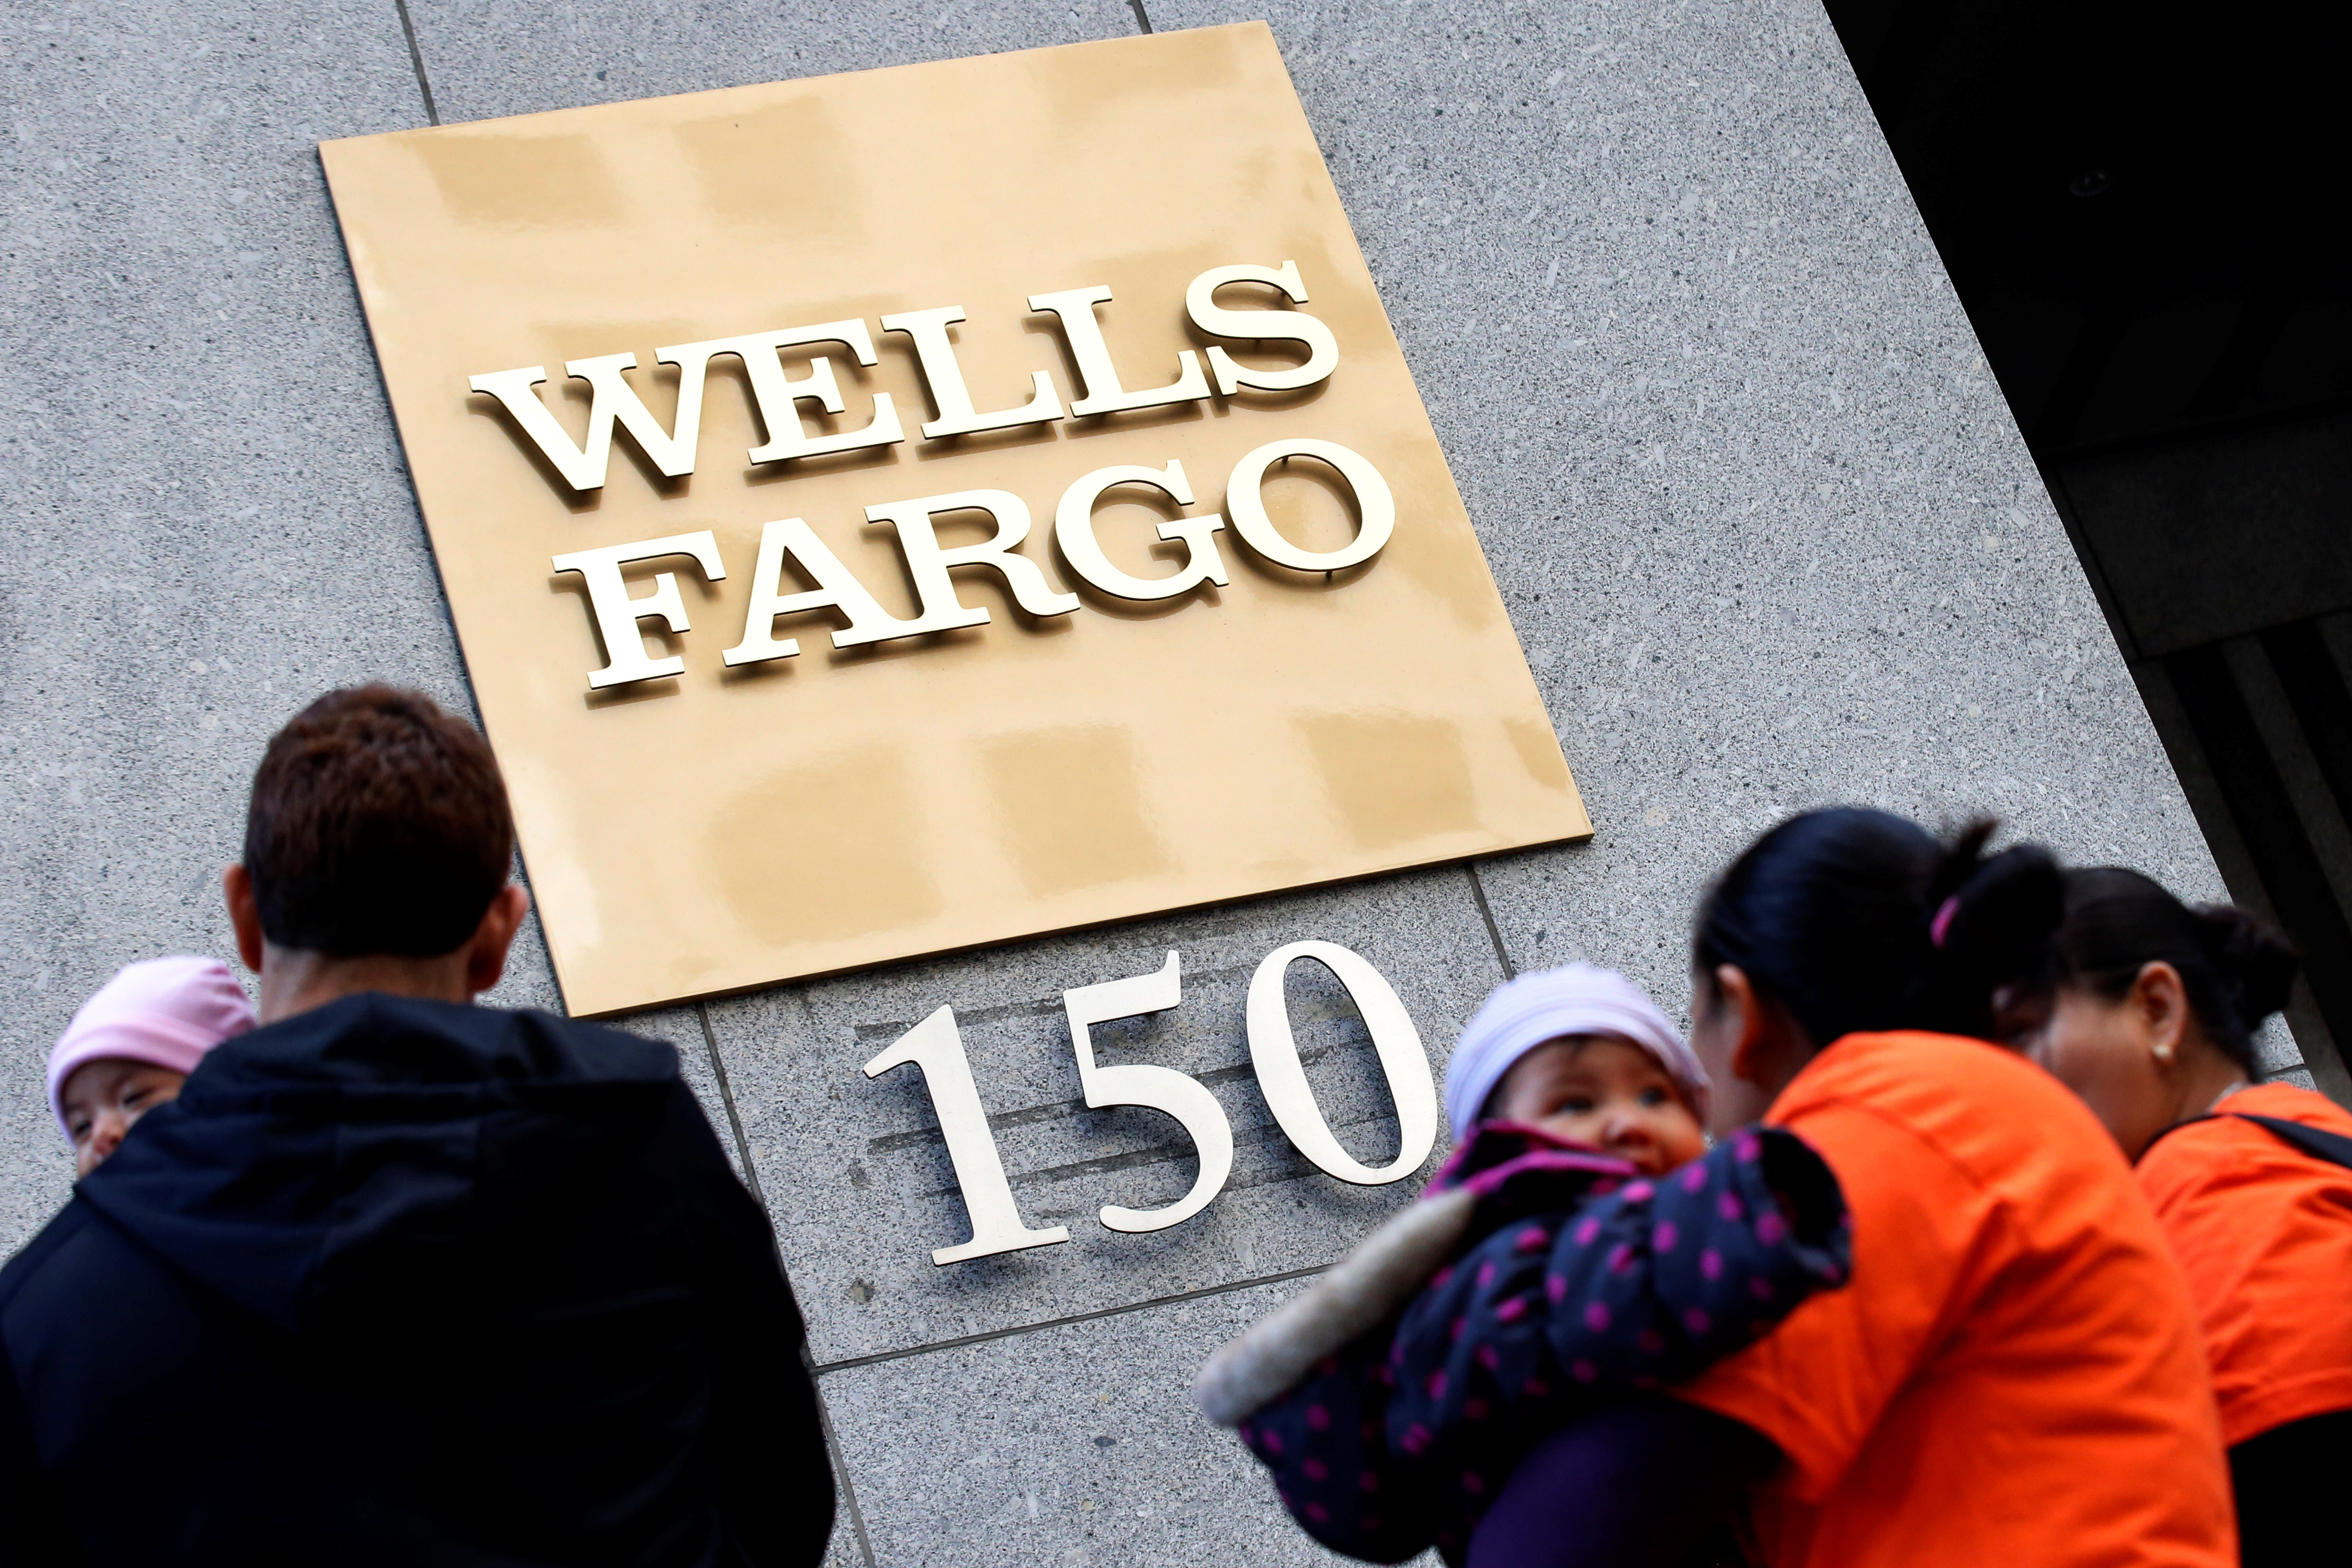 ROI of Wells Fargo & Company (NYSE:WFC) stands at 8.8